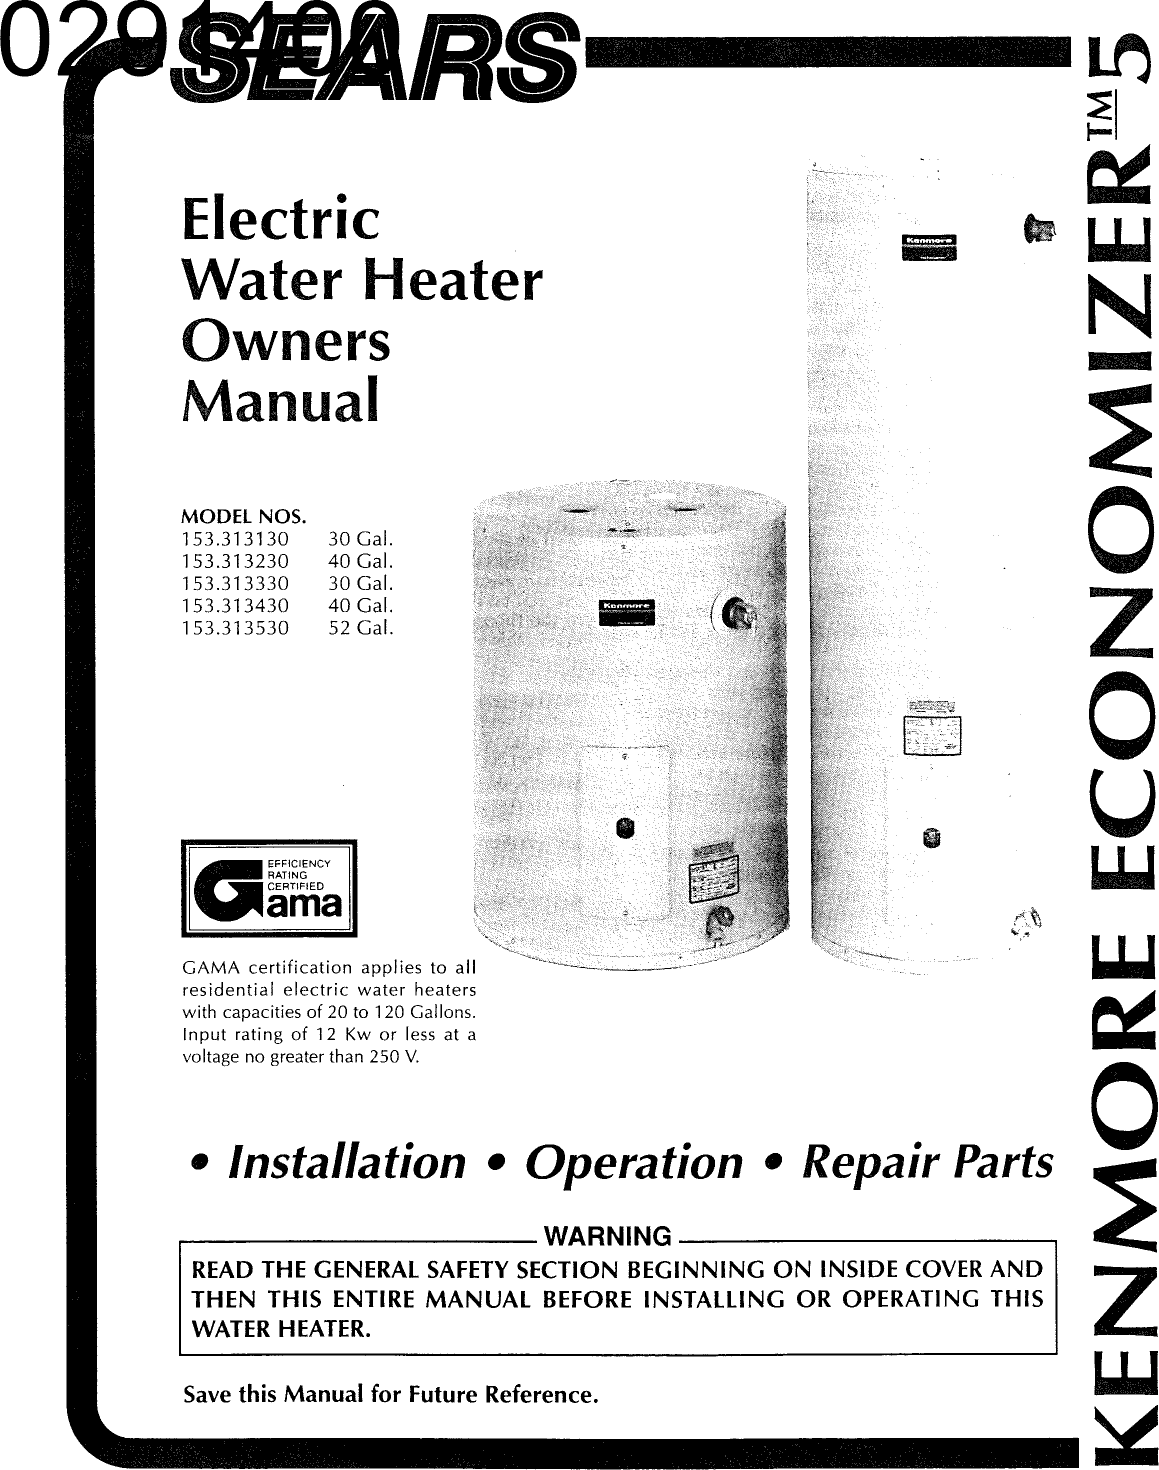 State Electric Water Heater Parts On Wiring A 40 Gallon Electric Water